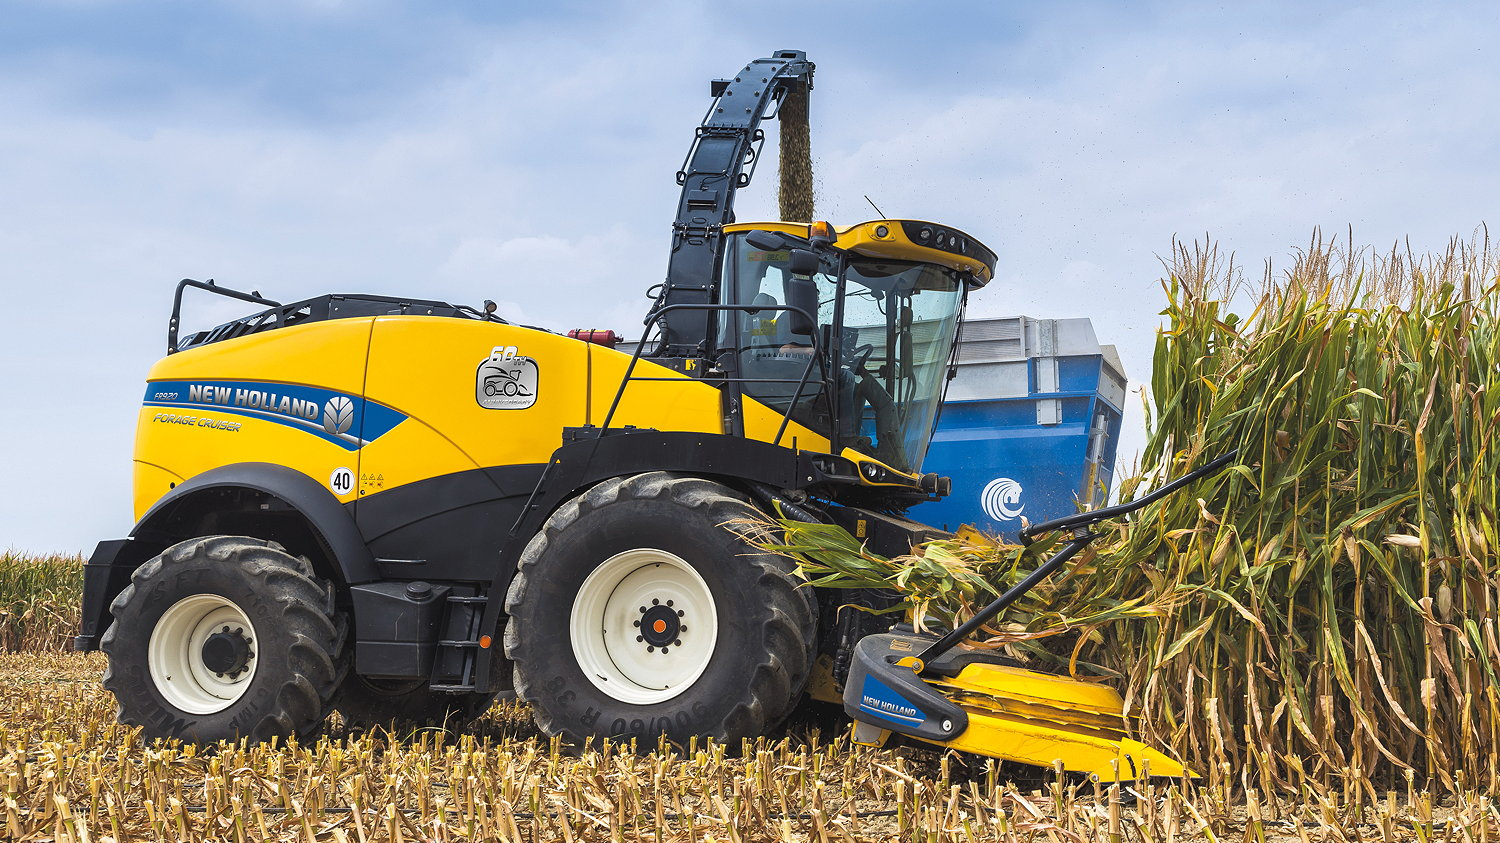 New Holland is marking the 60th anniversary of its first forage harvester with this special edition model